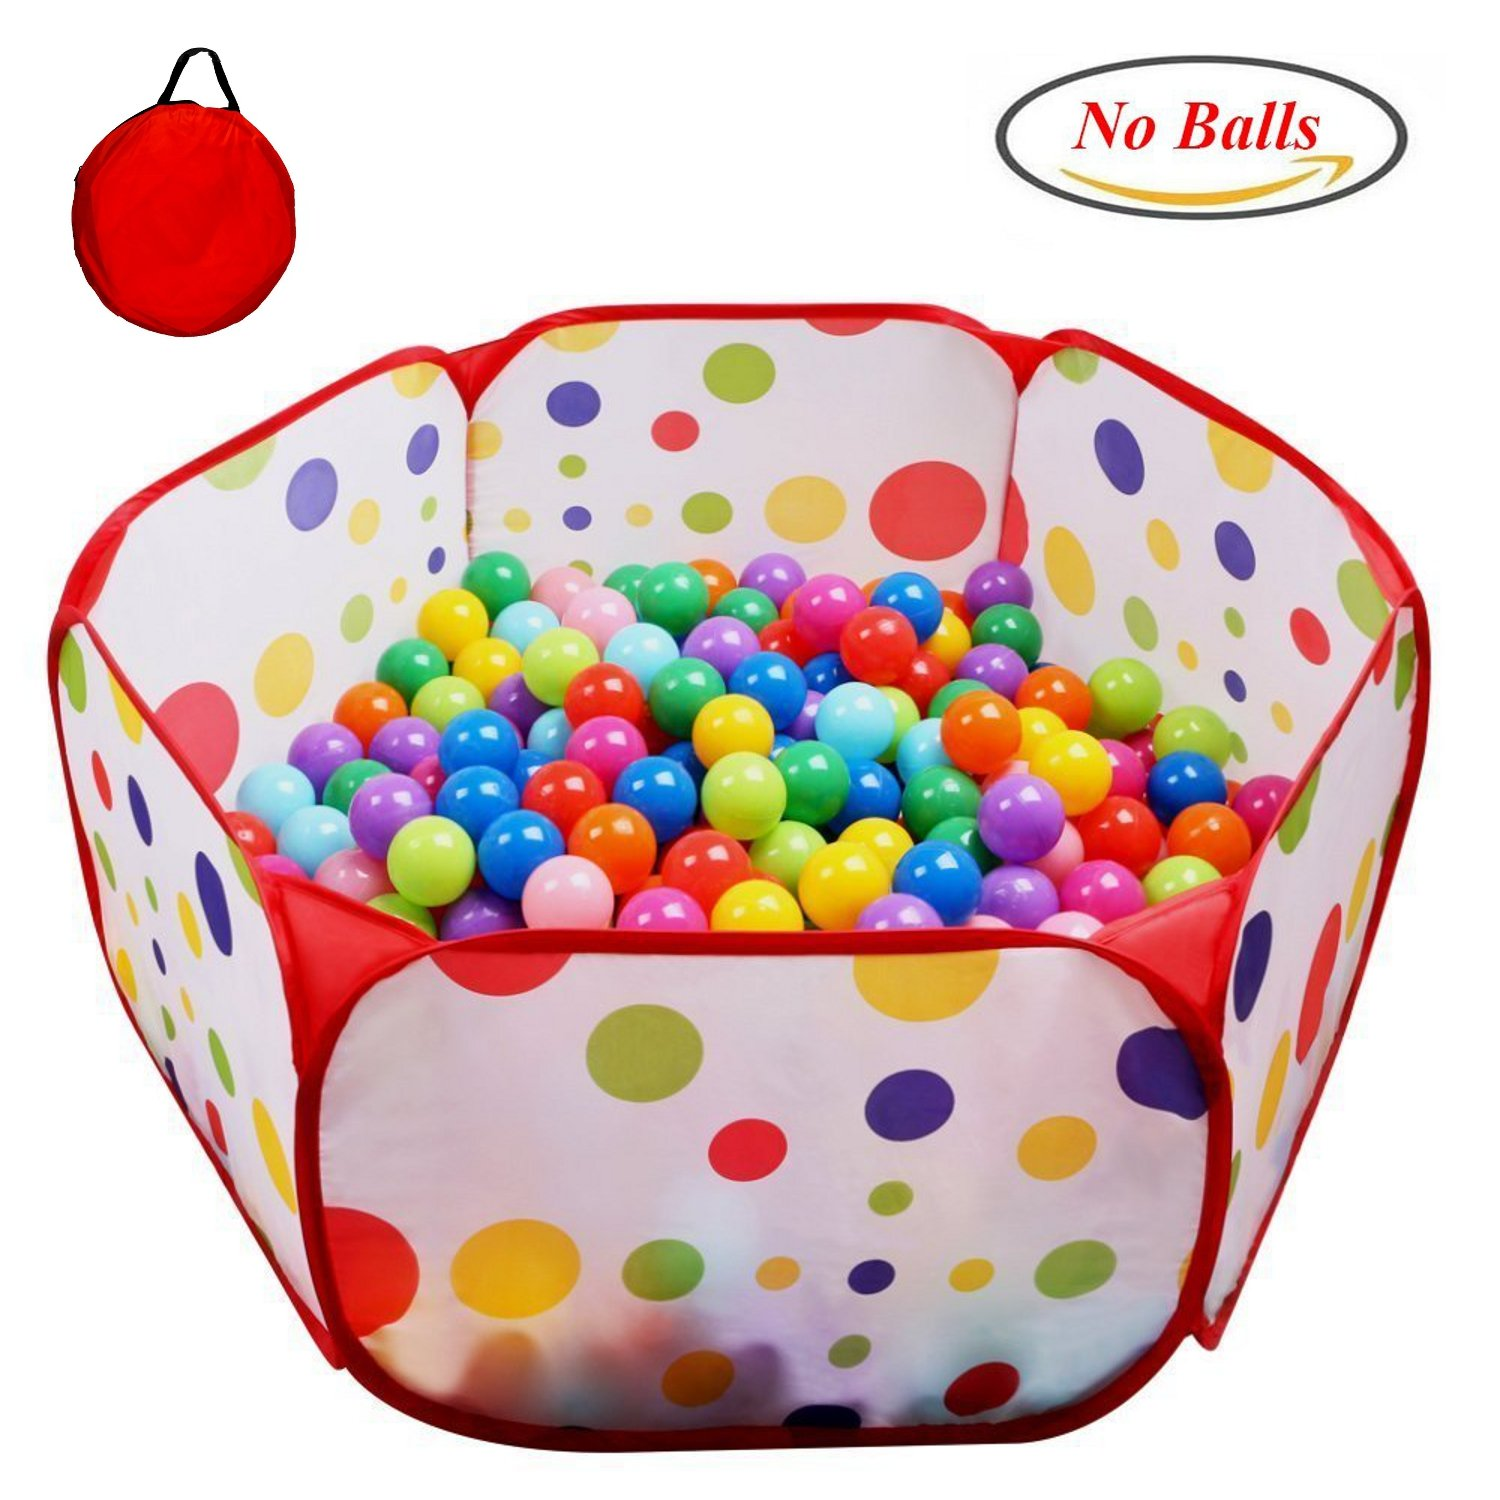 POCO DIVO Toddler Playpen Polka Dot Ball Pit 47 Twist Pool Kids Popup Hexagon Play Tent